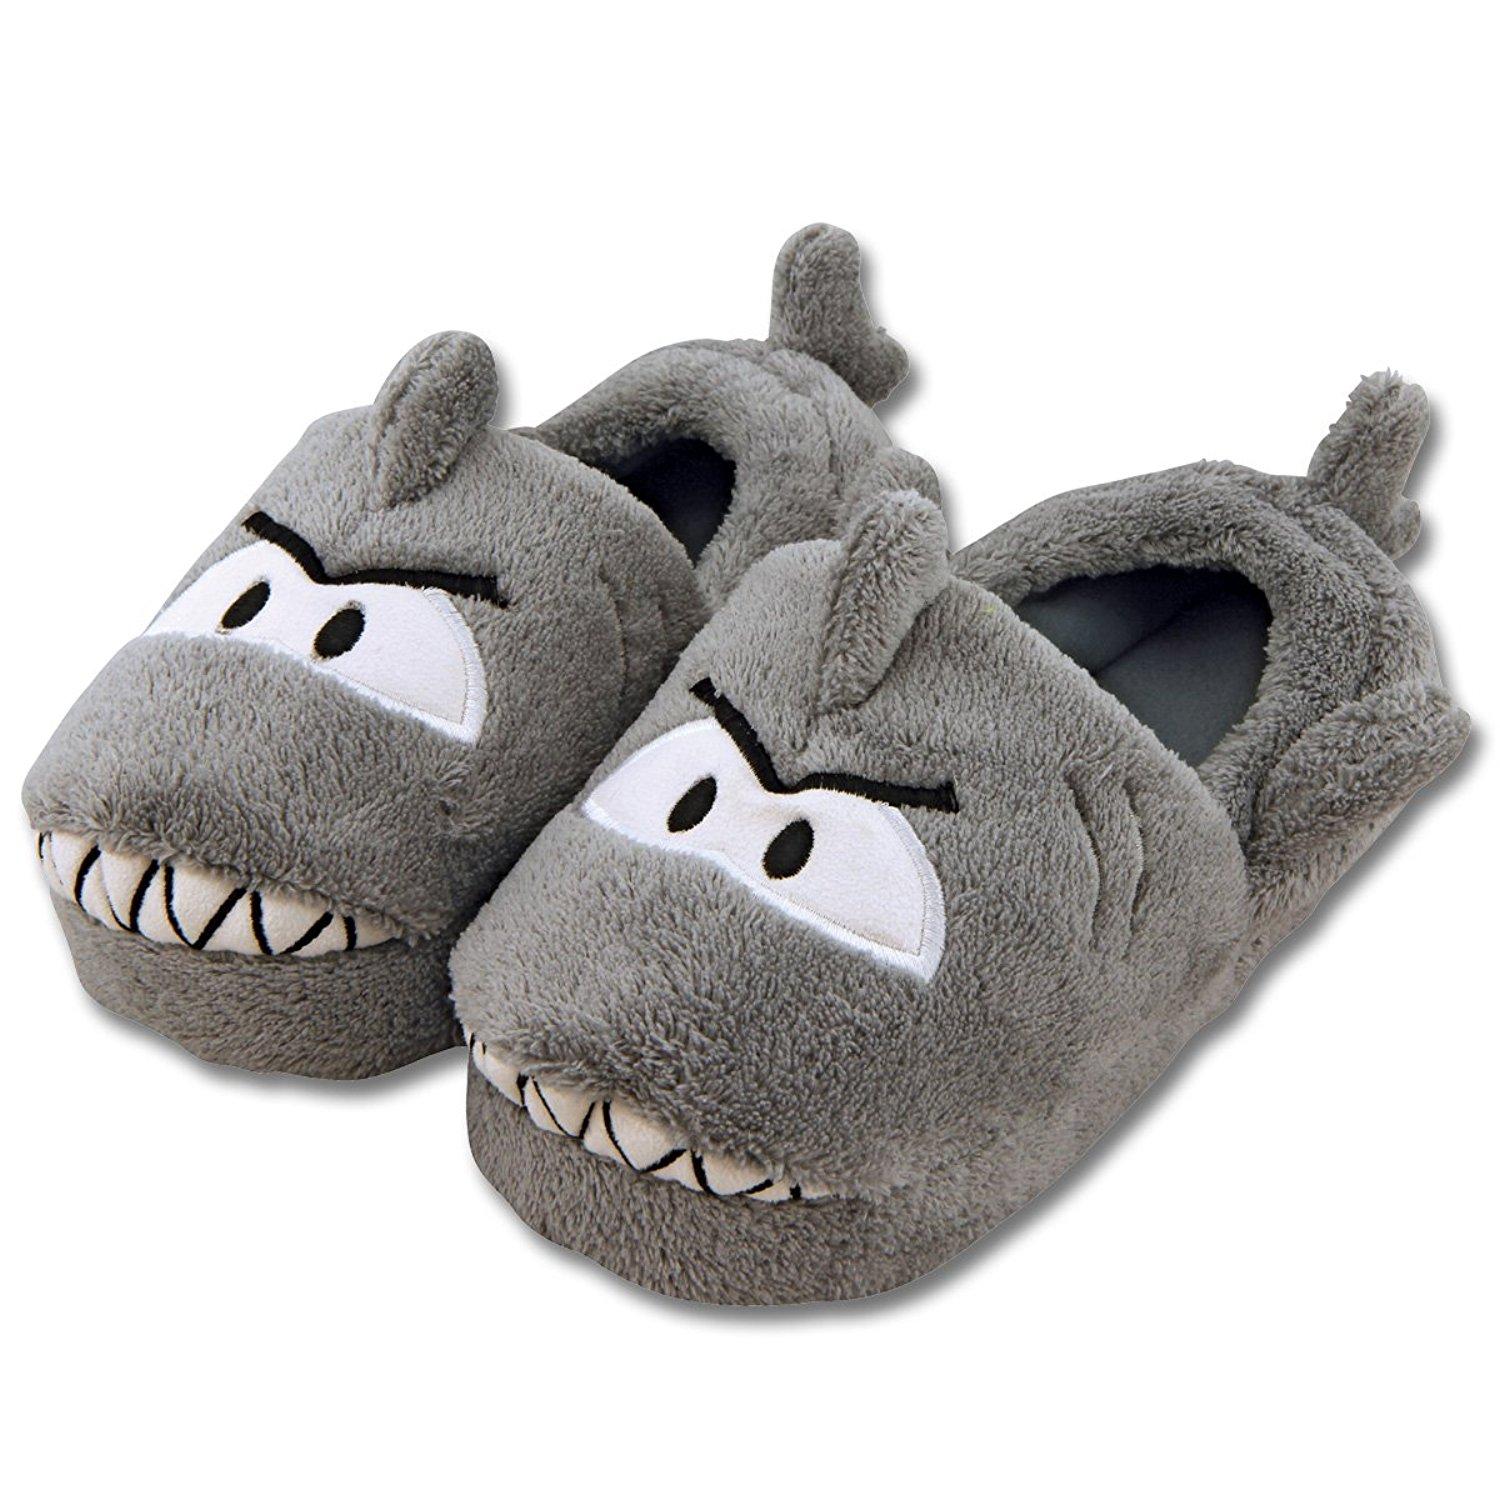 74c9ca23464 Get Quotations · Stephen Joseph Toddler Silly Slippers